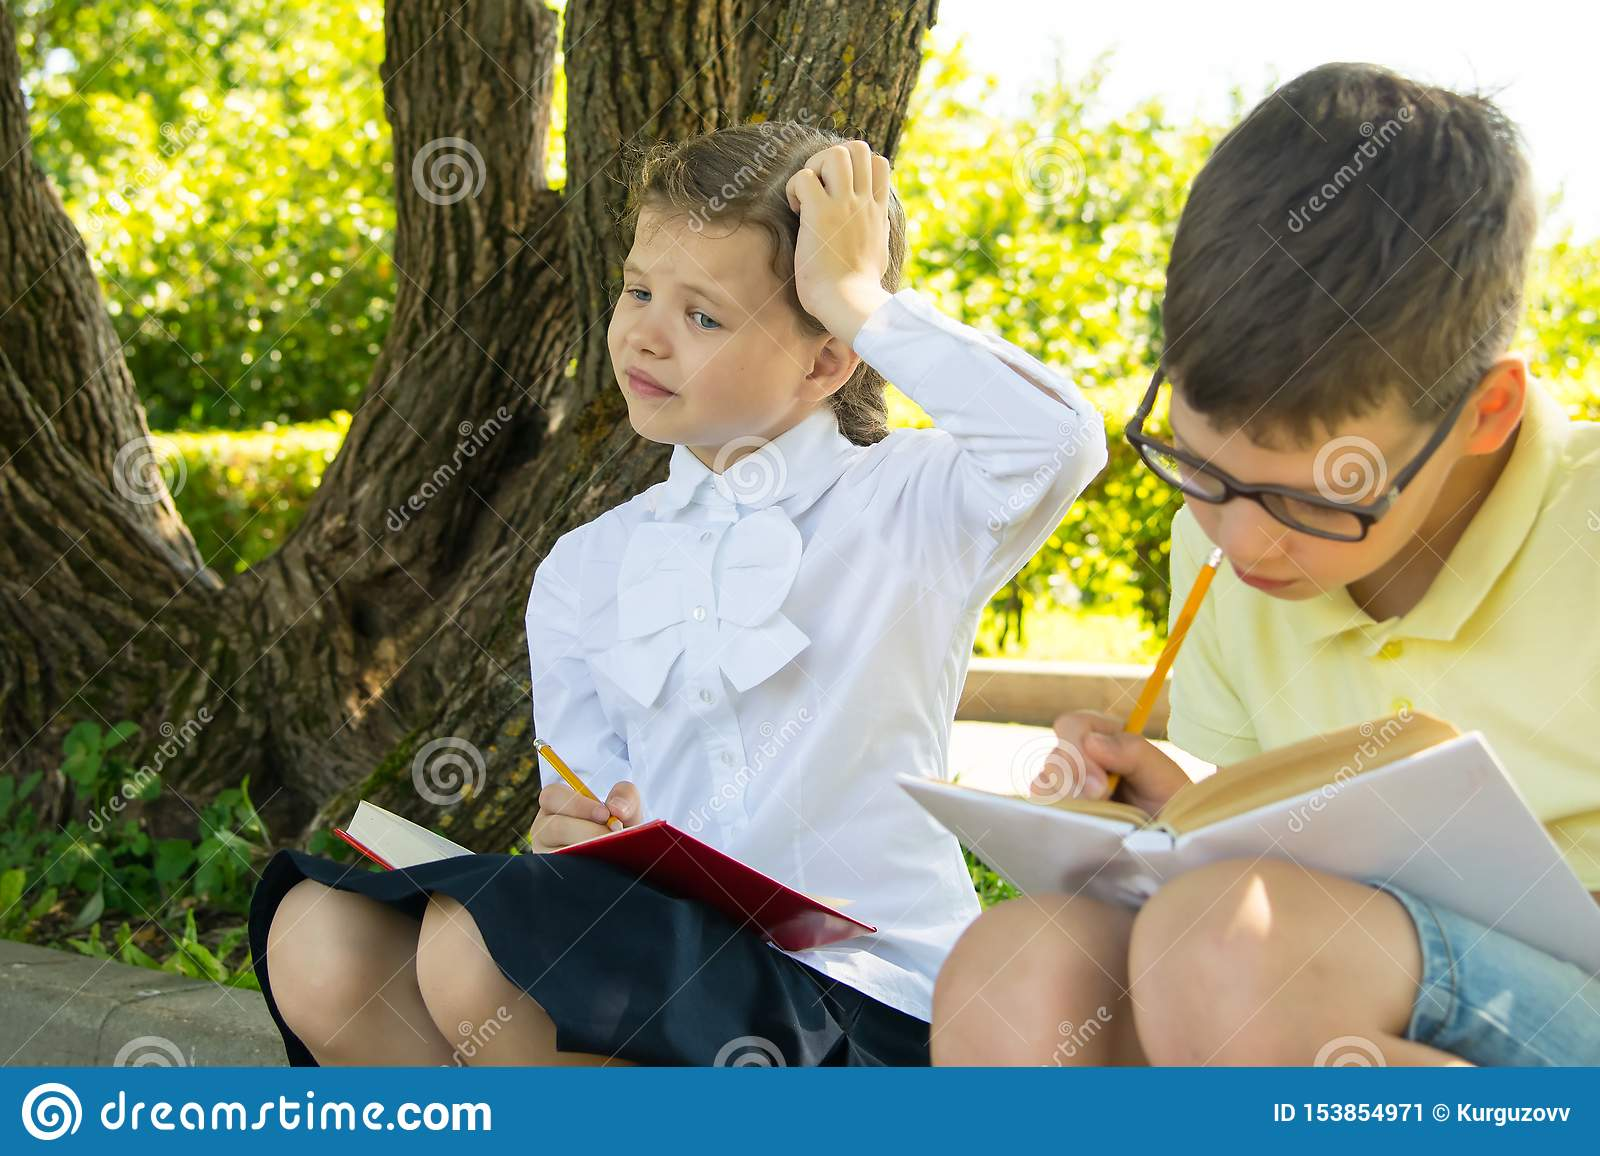 Schoolchildren doing homework, in the park in the fresh air, the girl thought about the task and scratches her head